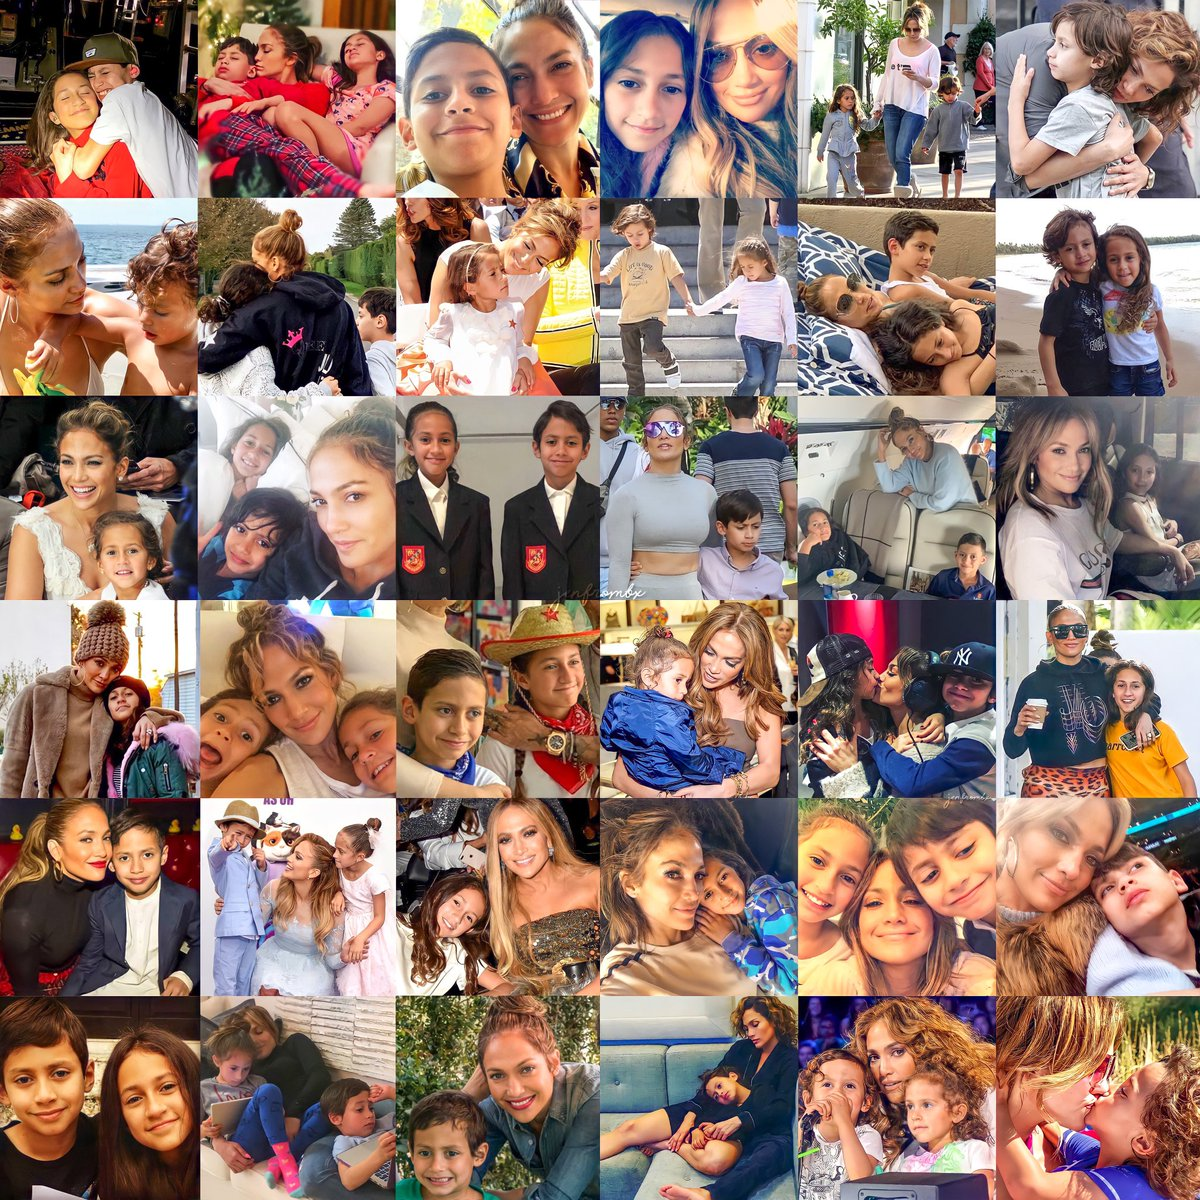 happy birthday max and emme!!! 🎂🎊 your lovely momma @JLo is so lucky to have two amazing children like you❤️ love you cocos🥥🥥 #happybirthdaycoconuts #maxandlulu #cocos13thbirthday